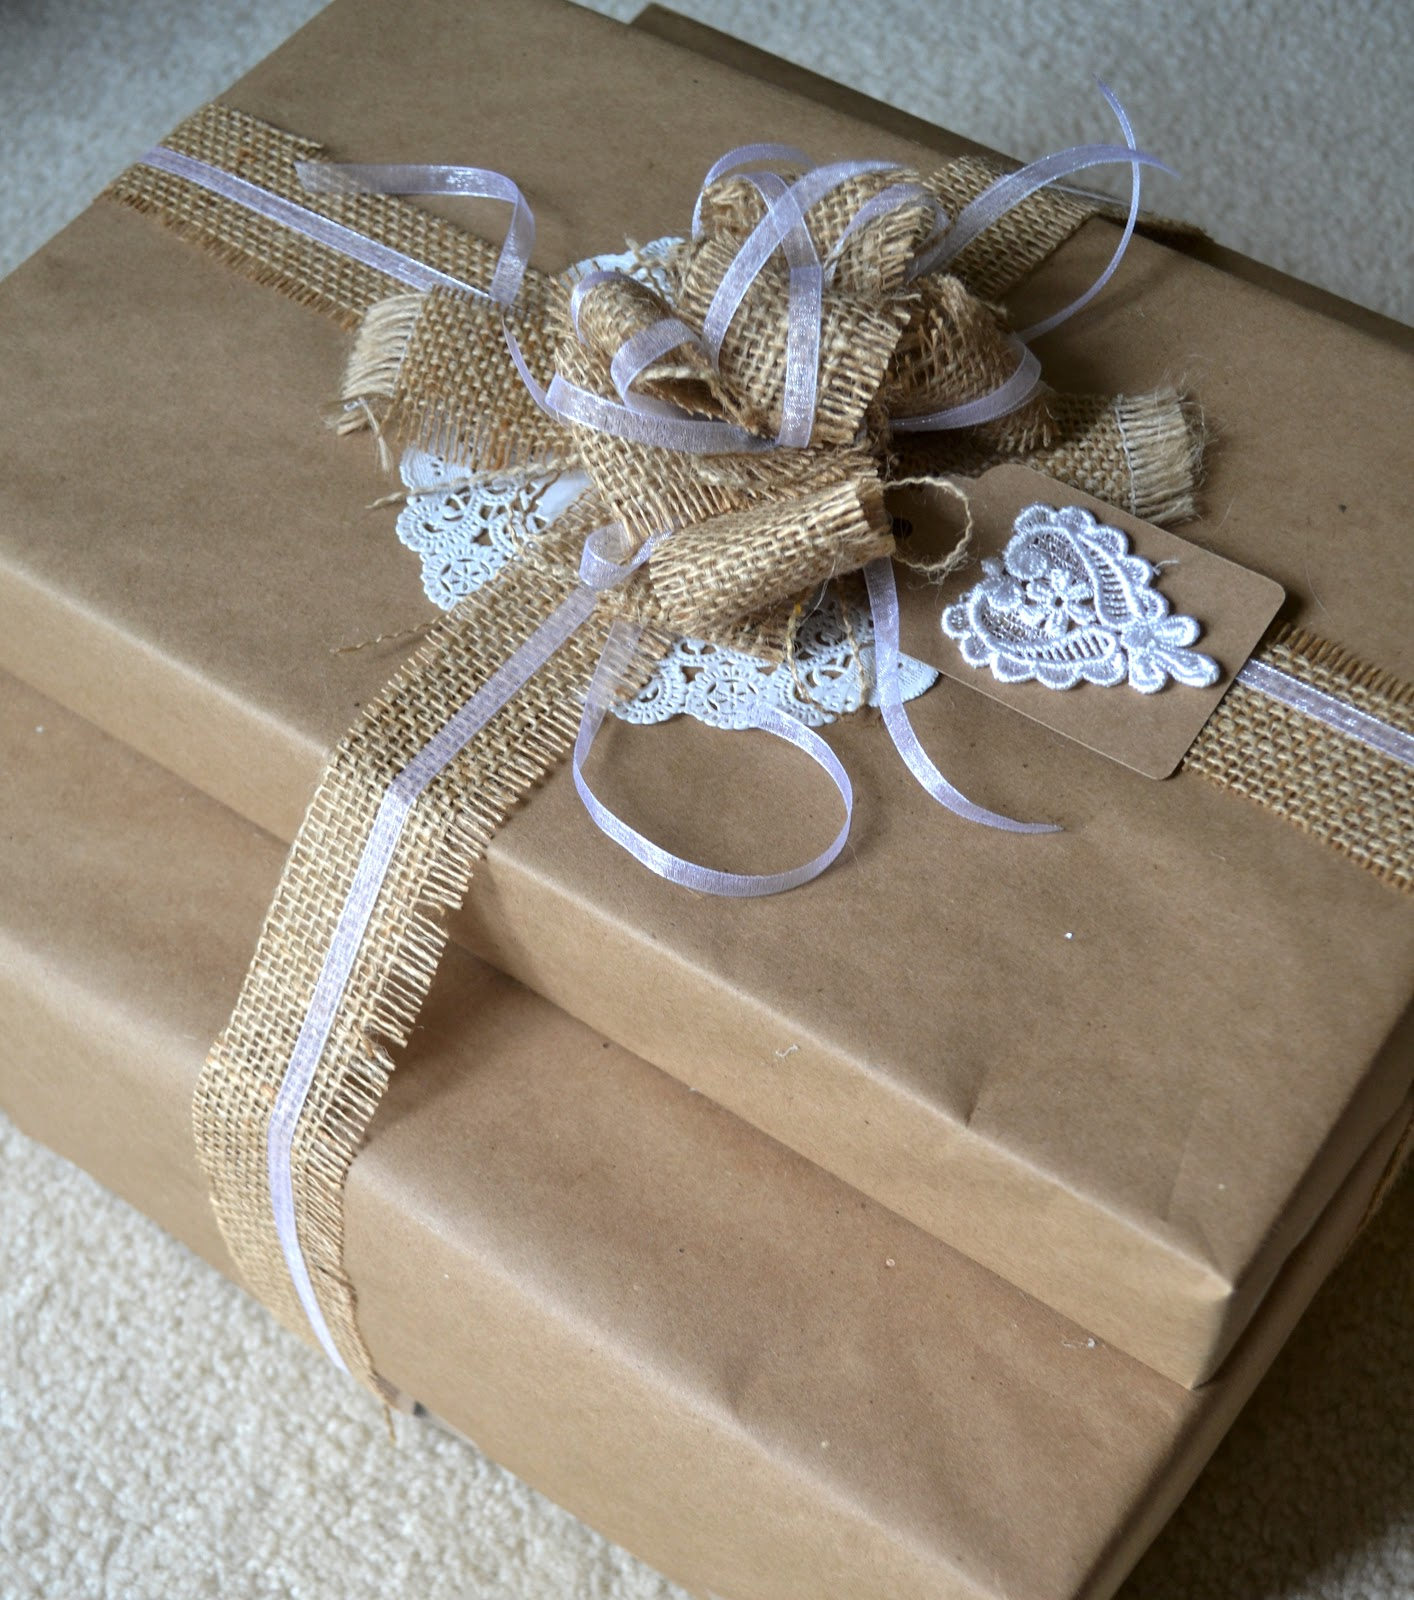 How To Wrap A Wedding Gift Box : used kraft paper made out of recycled materials, burlap, a doily and ...